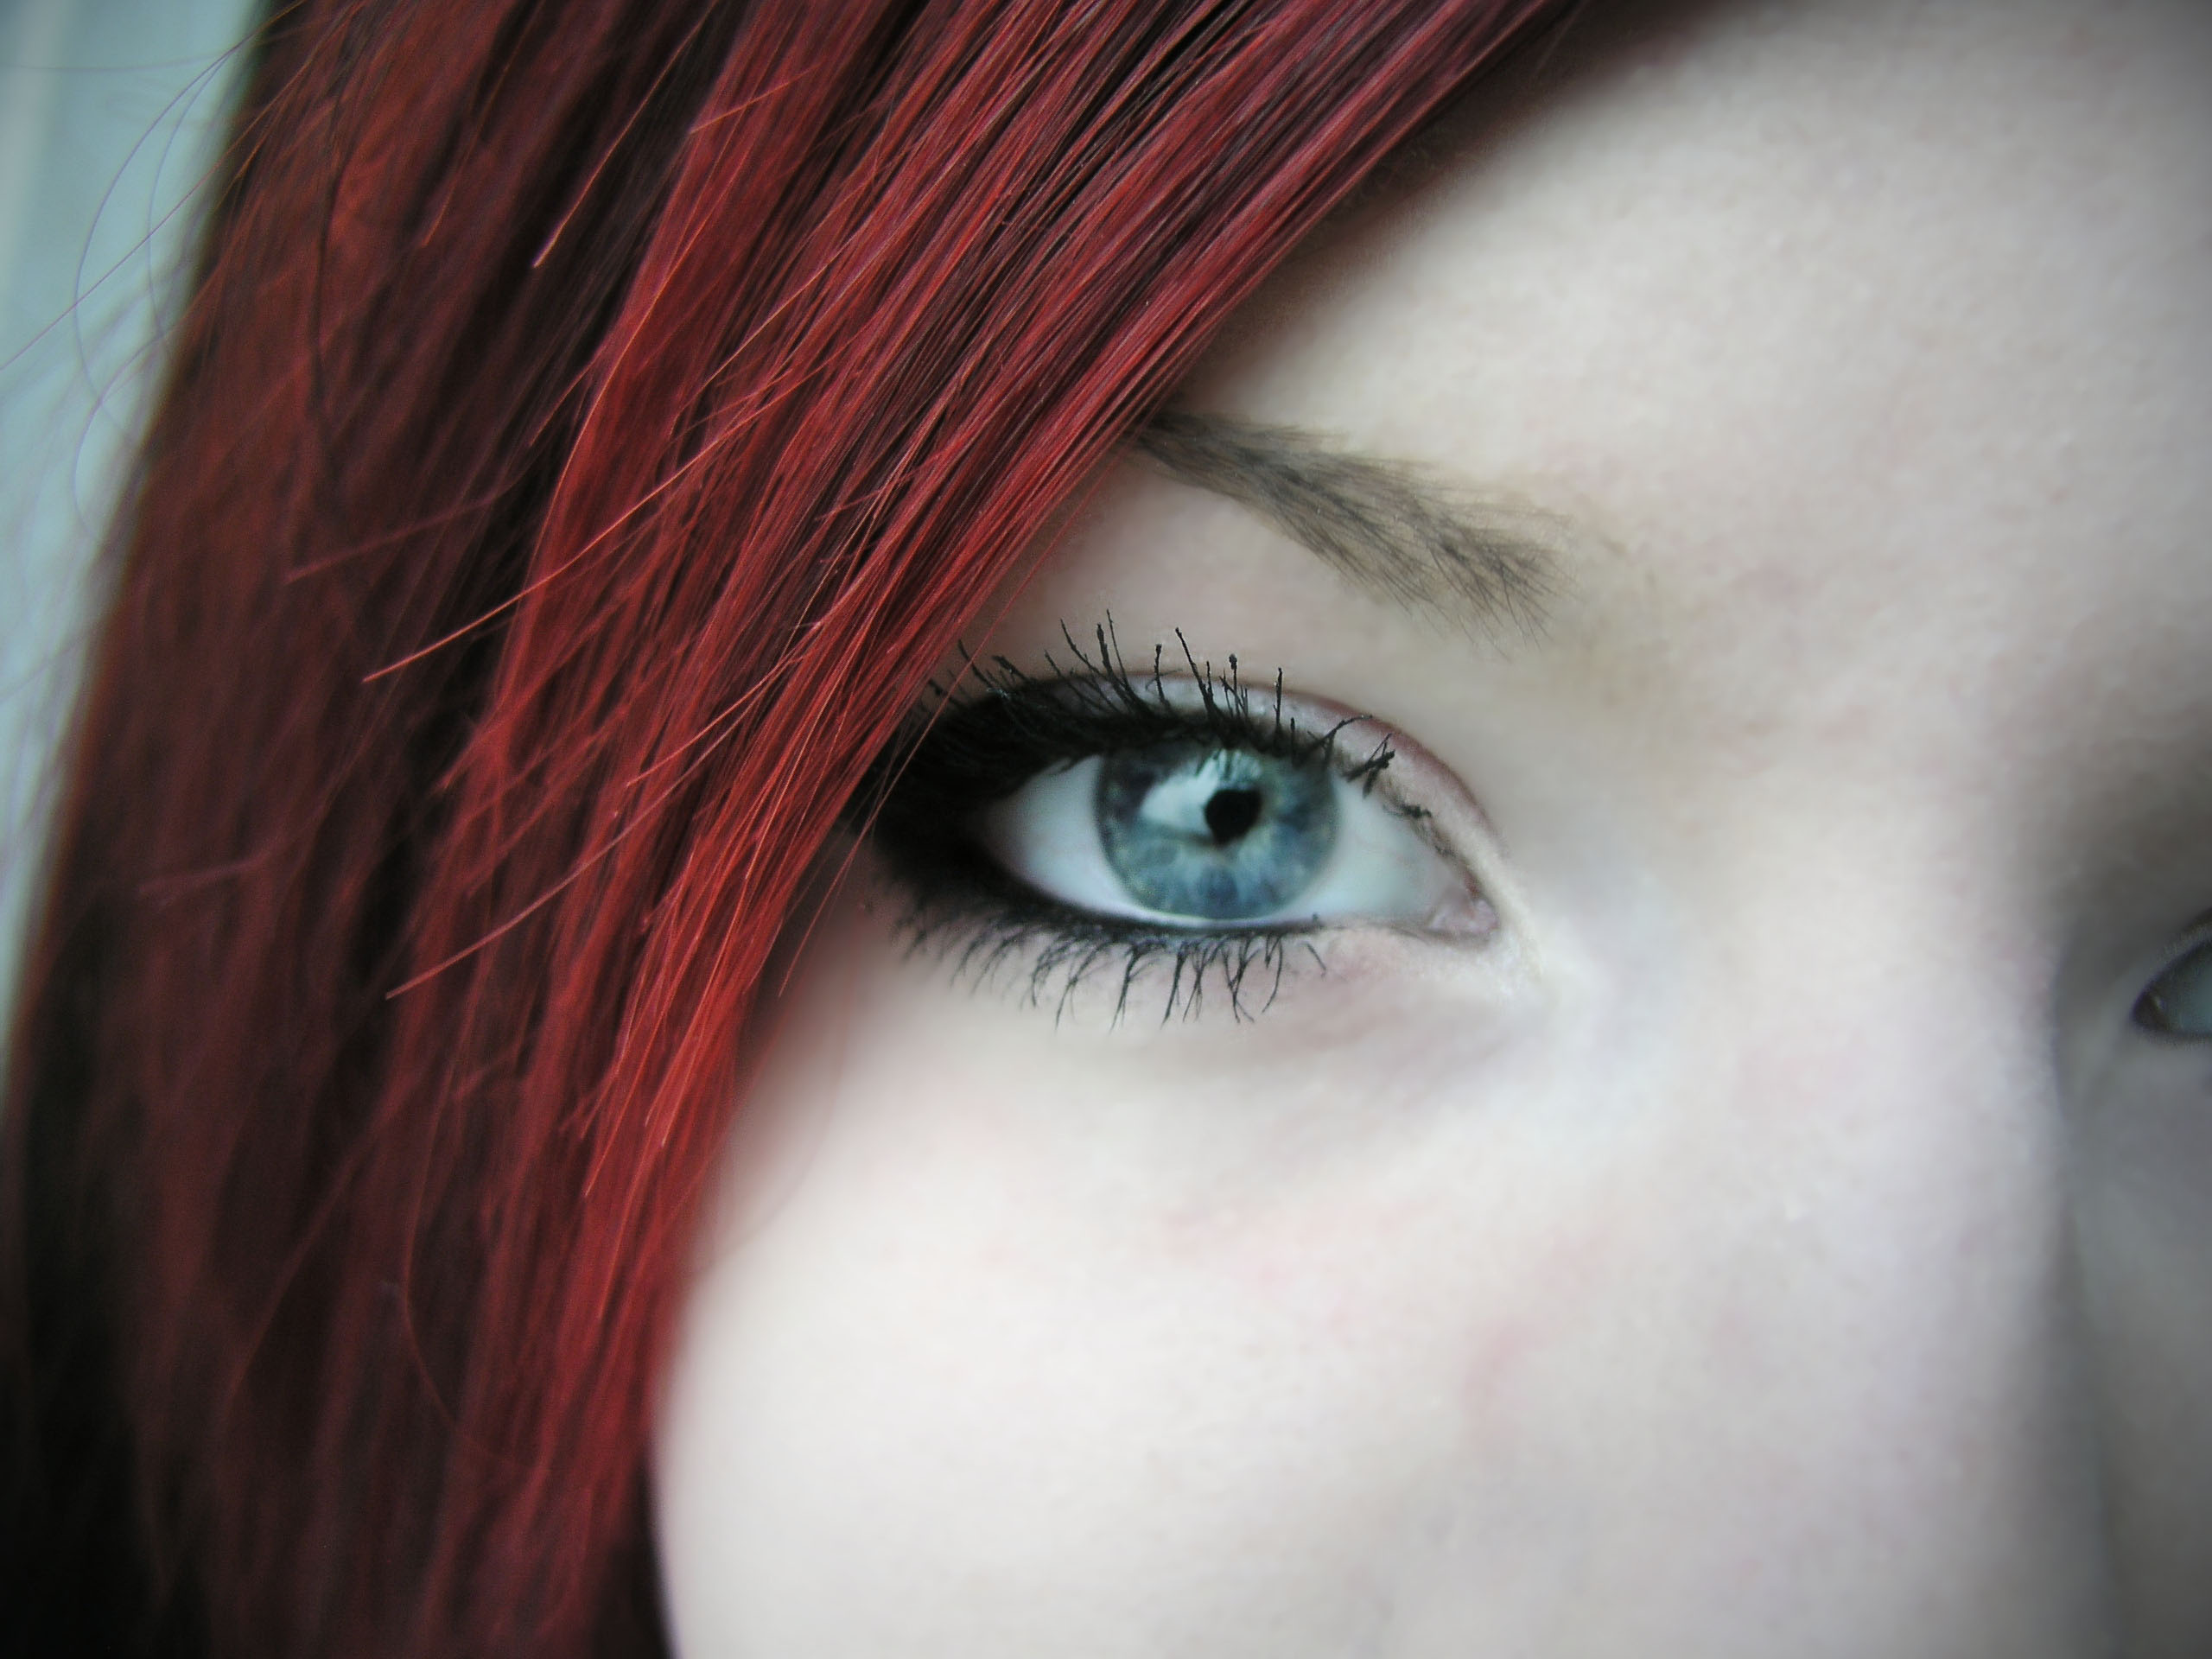 woman close-up blue eyes HD Wallpaper